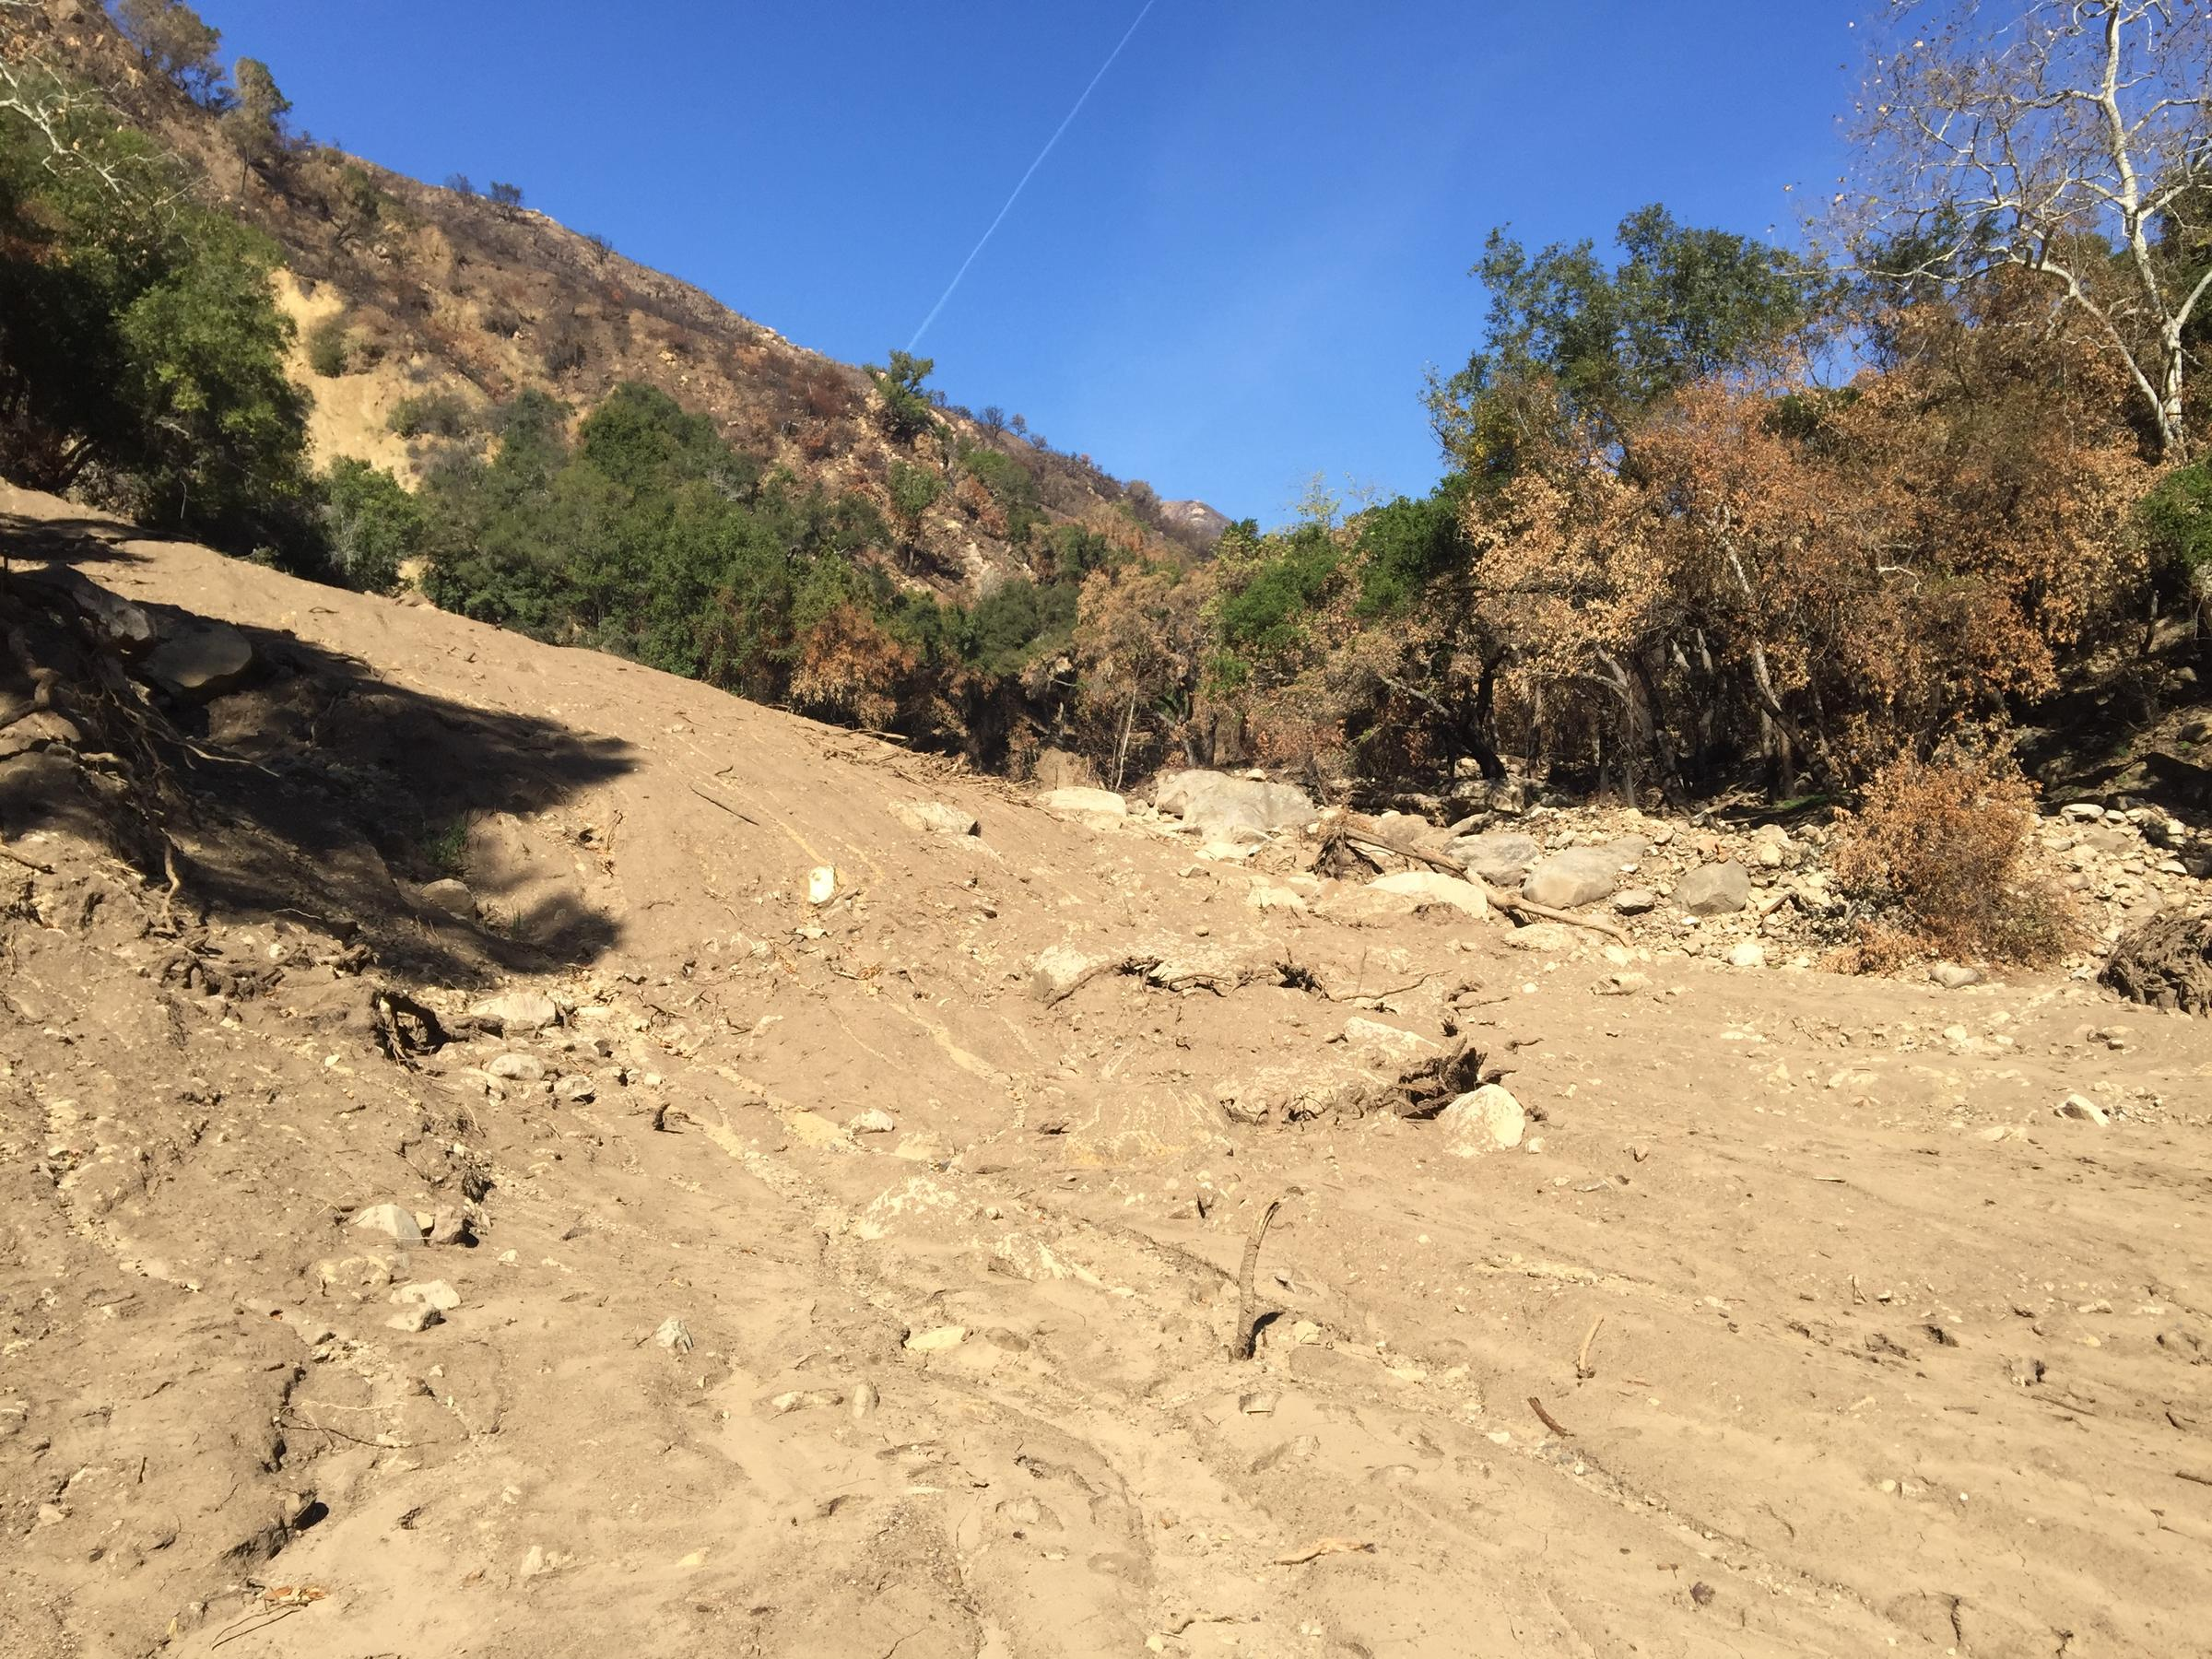 Evacuation warning issued for mudslide area